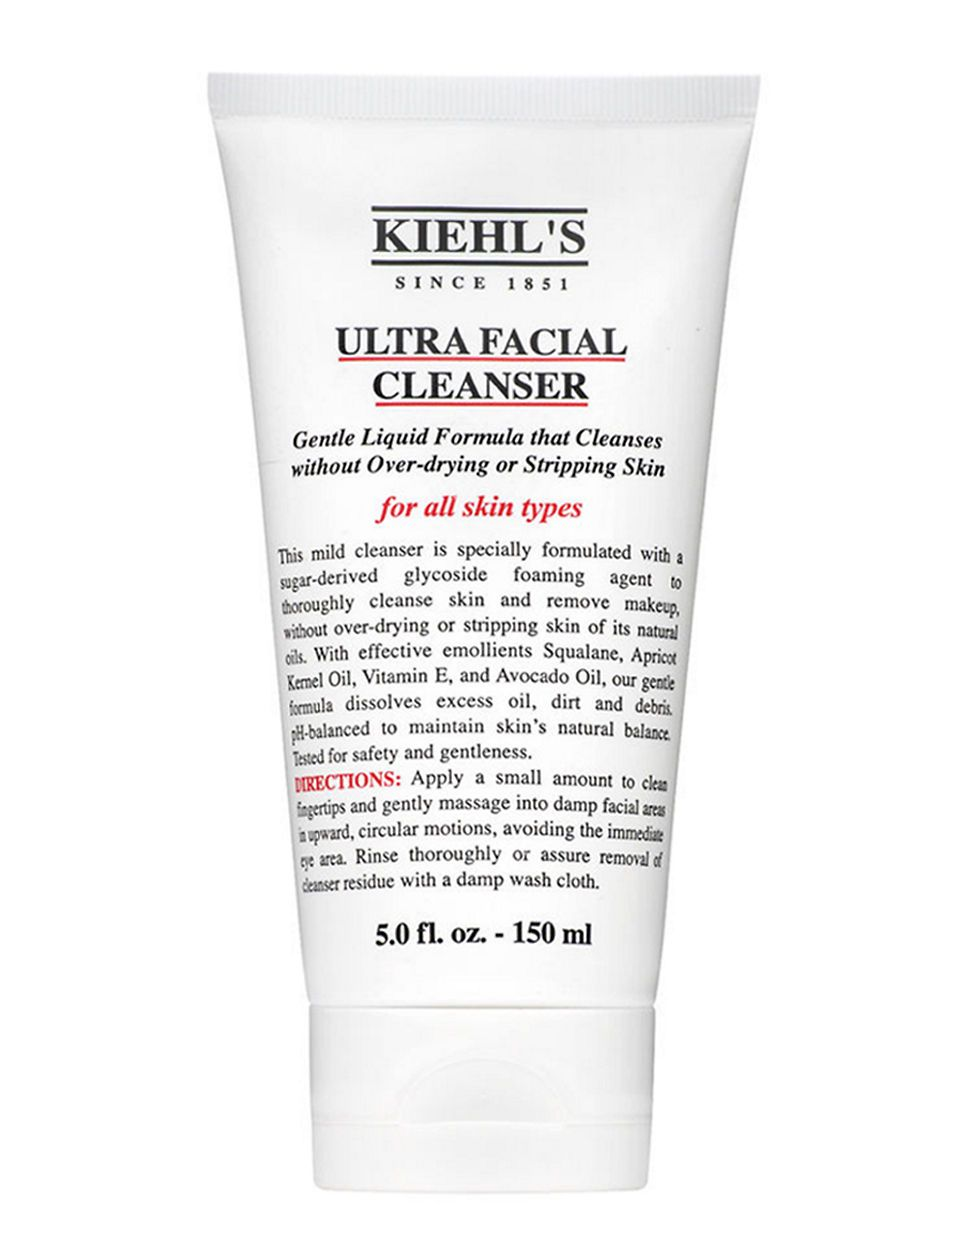 Ultra Facial Cleanser by Kiehlus  BayBeauty  Holy Grail Beauty